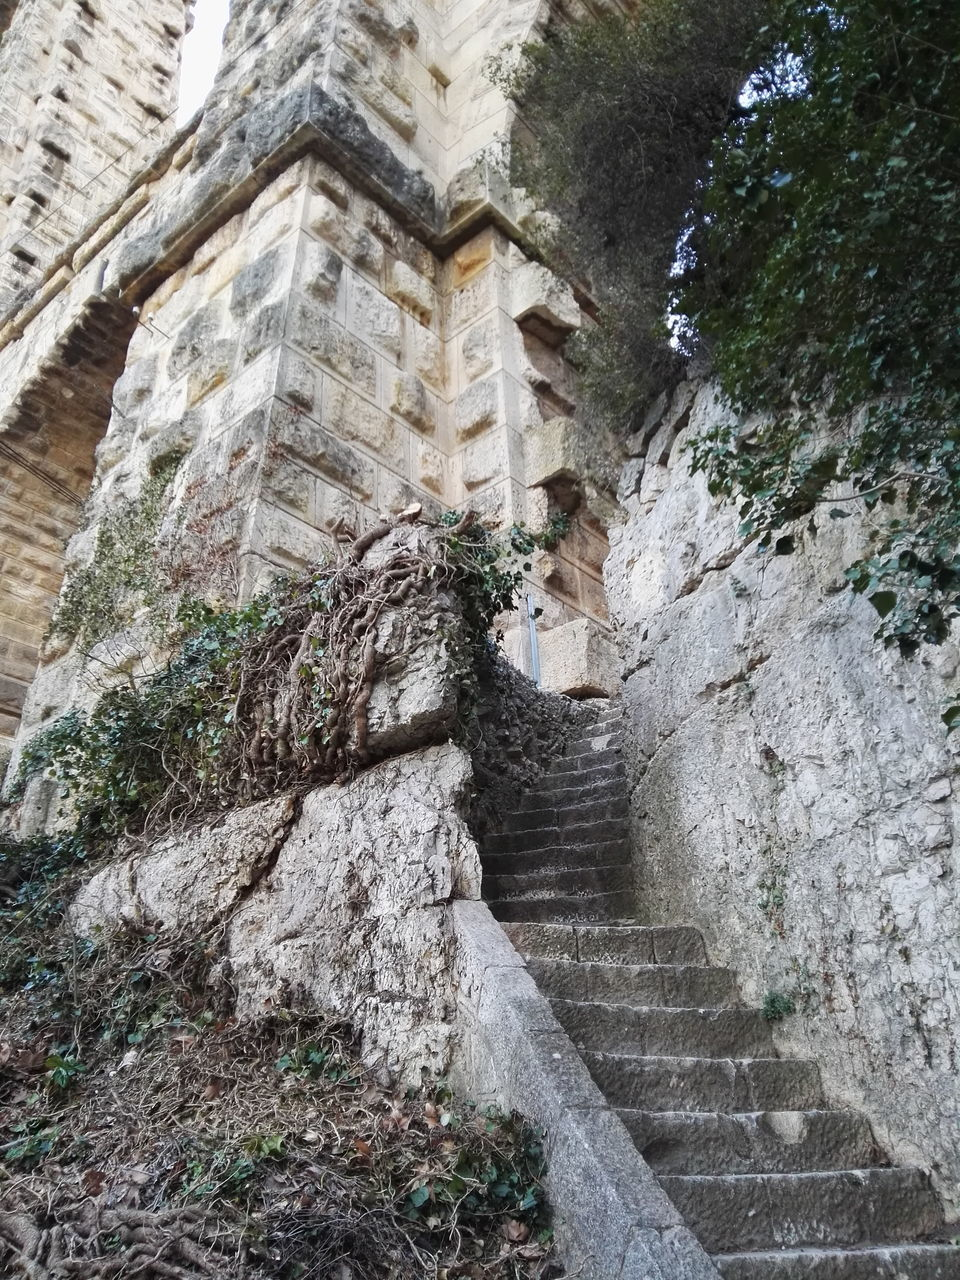 stone material, steps, history, architecture, rock - object, ancient, steps and staircases, built structure, low angle view, old ruin, day, no people, outdoors, nature, ancient civilization